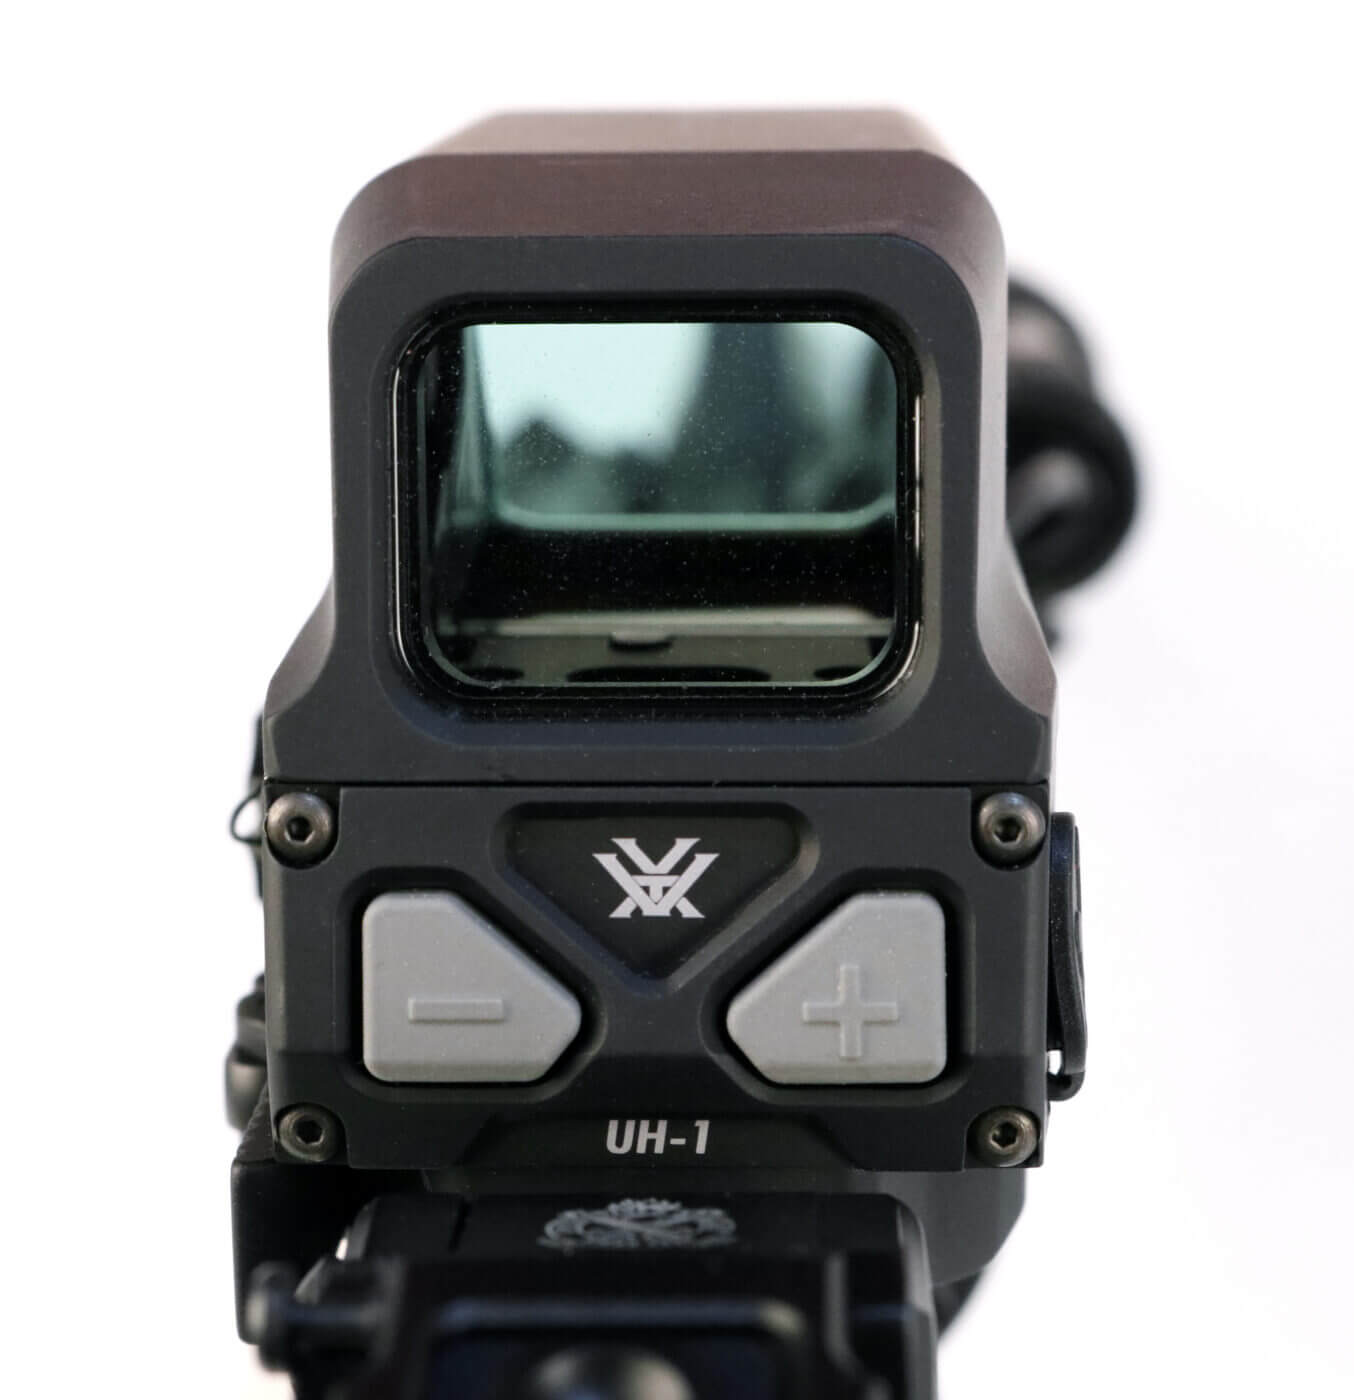 Controls for Vortex AMG UH-1 Holographic Sight optic